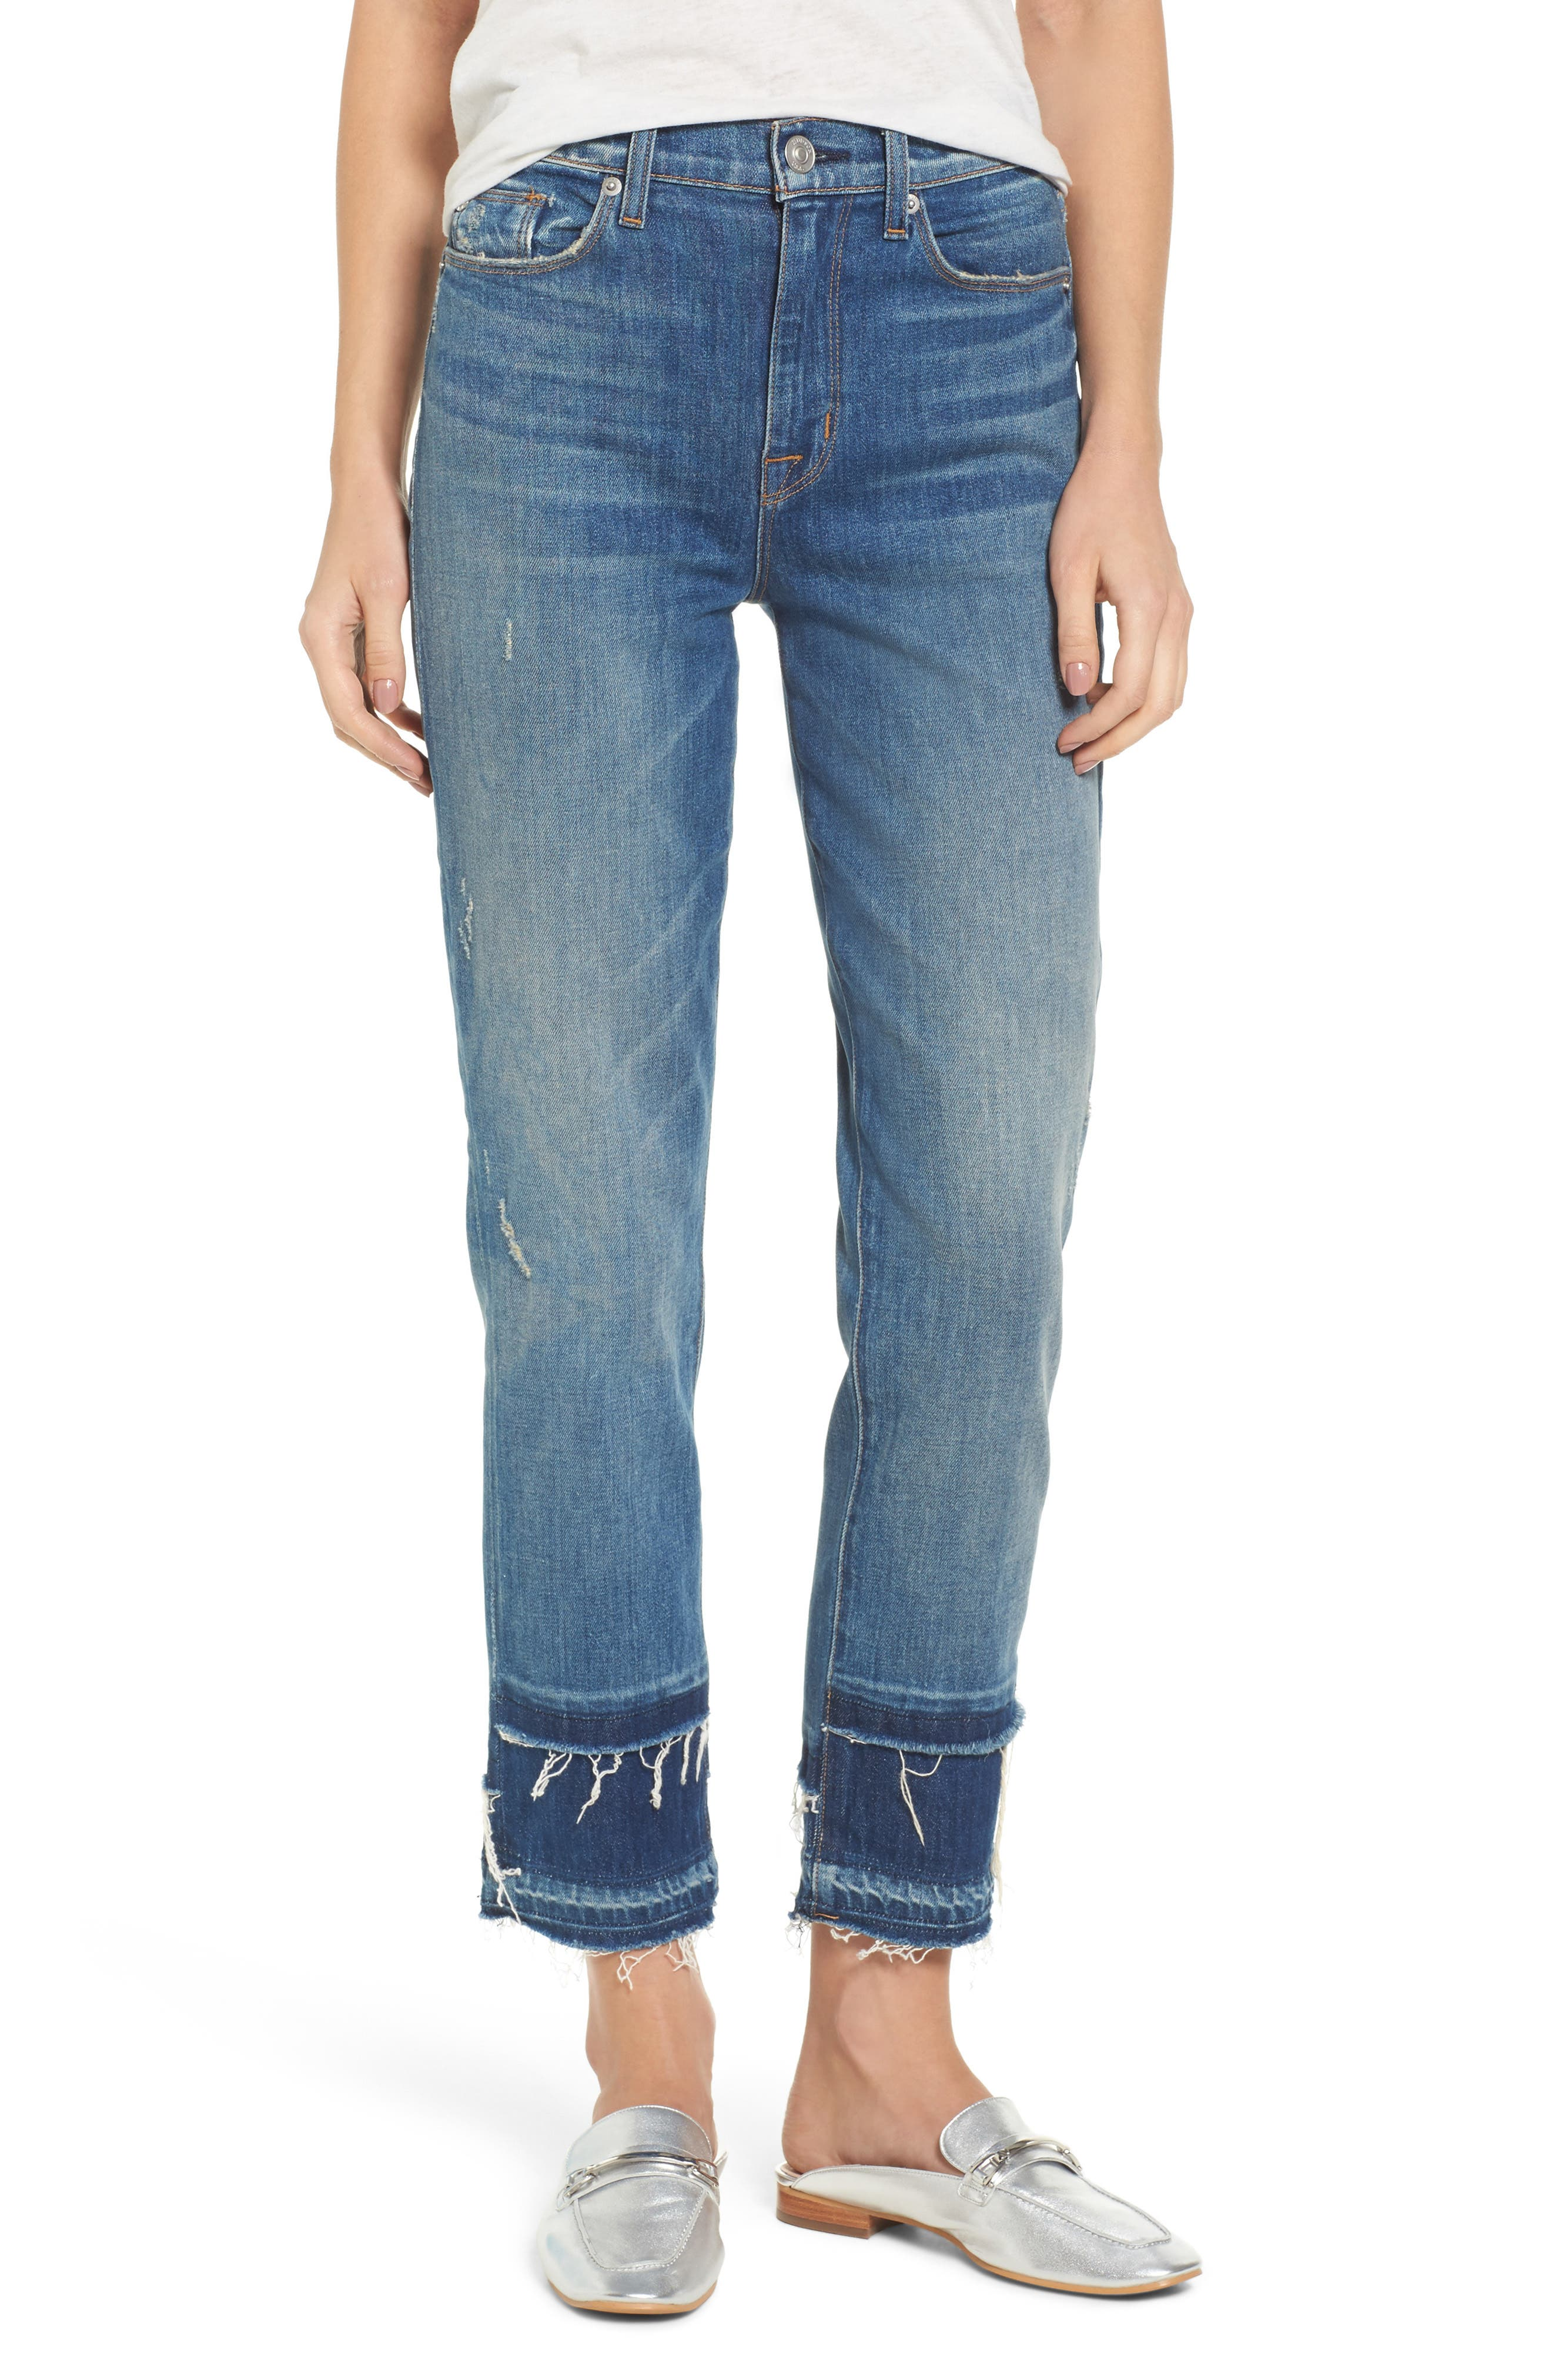 Zoeey High Waist Crop Straight Leg Jeans,                         Main,                         color, Social Grace